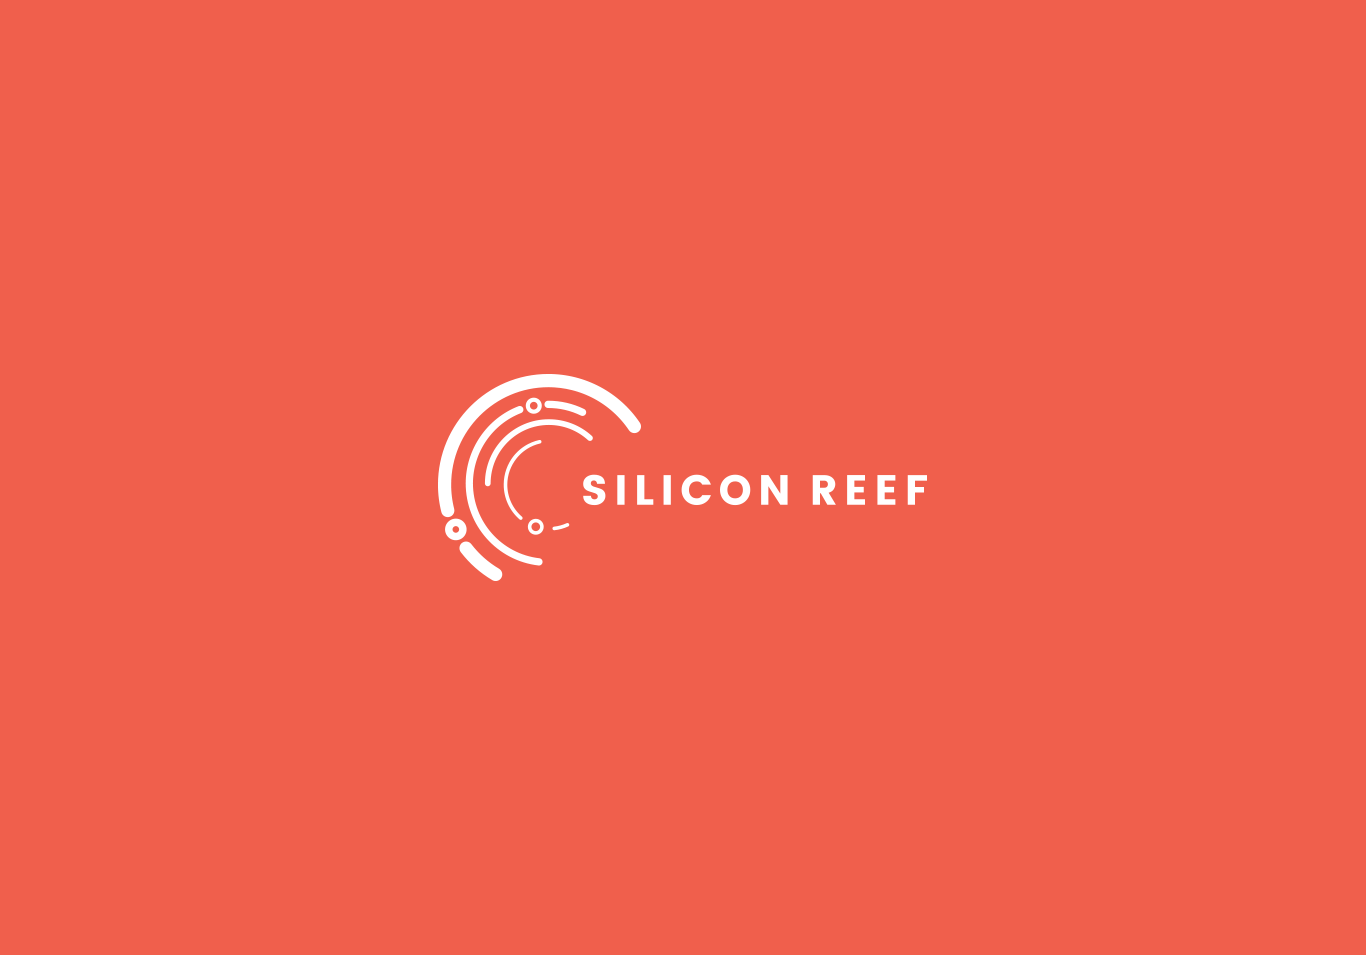 Silicon Reef - Branding